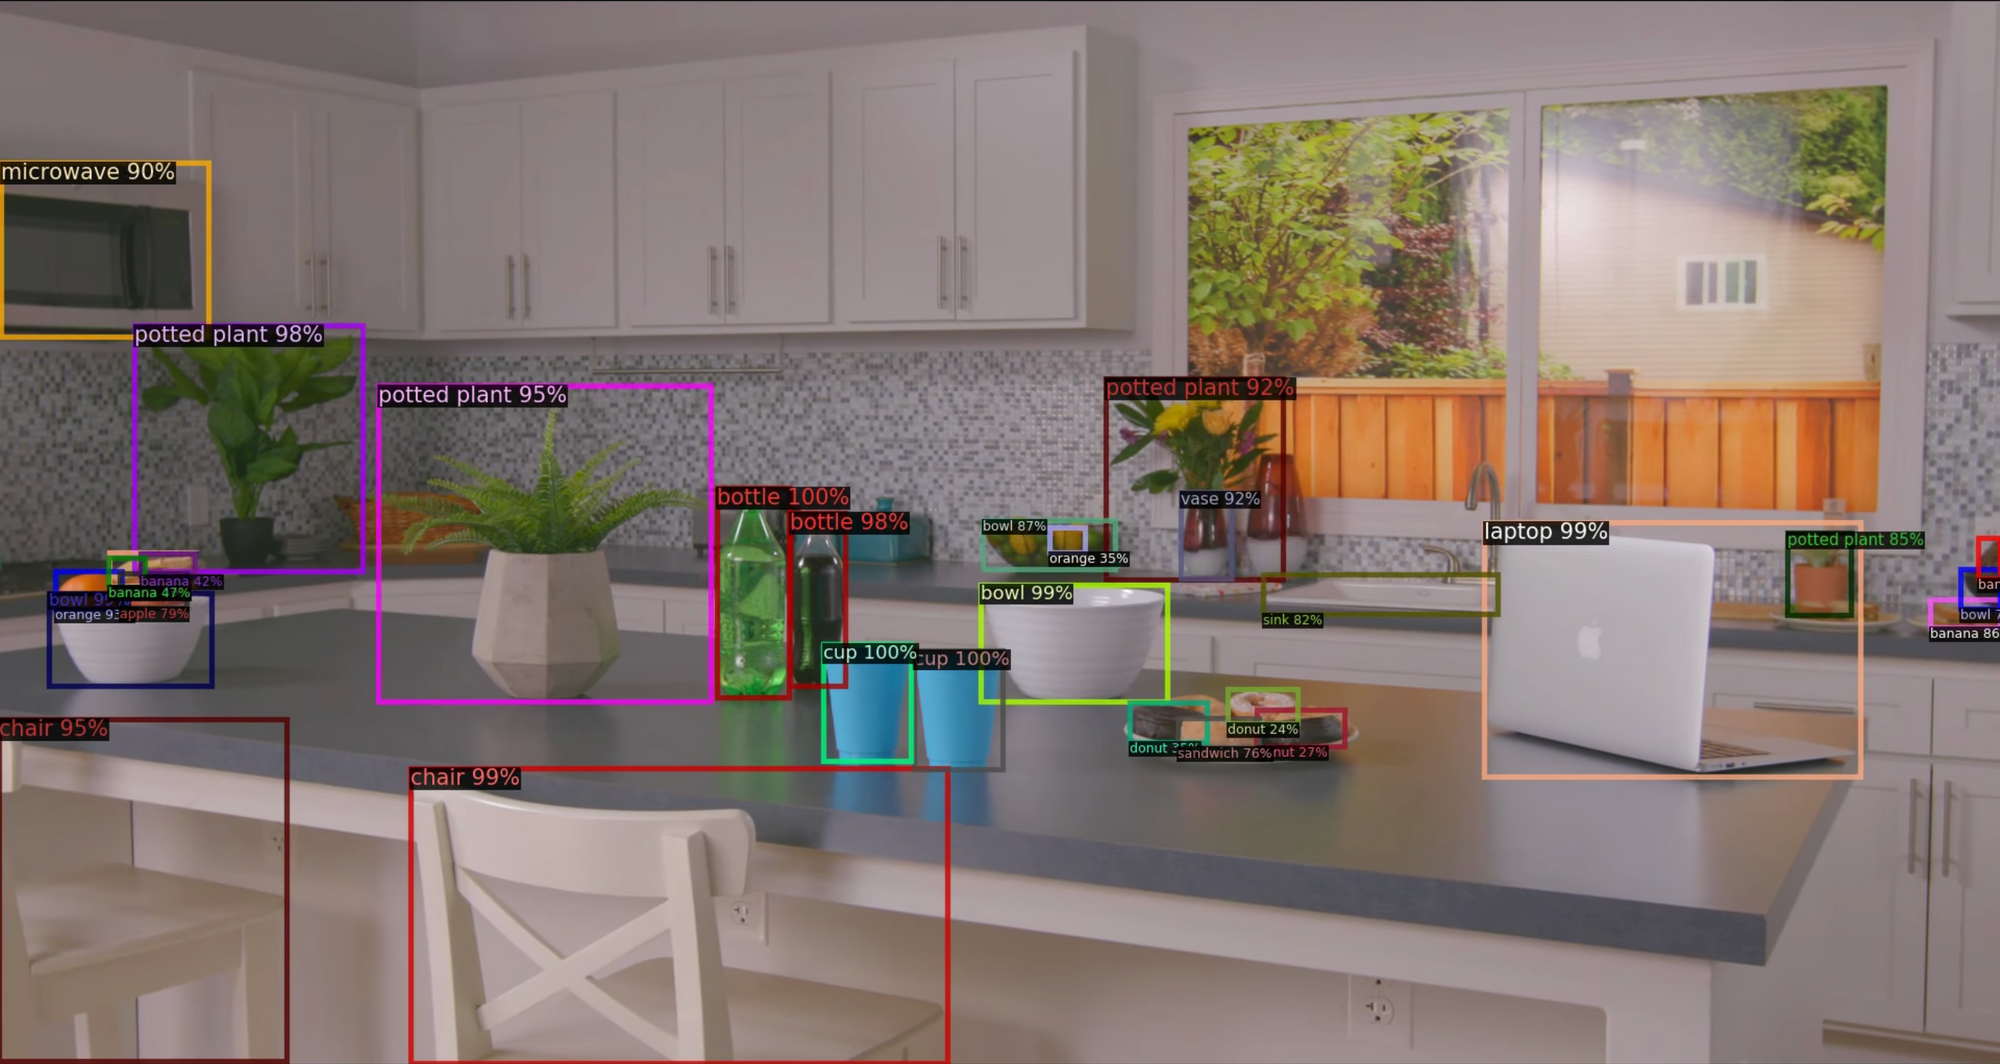 Object detection in Facebook Portal